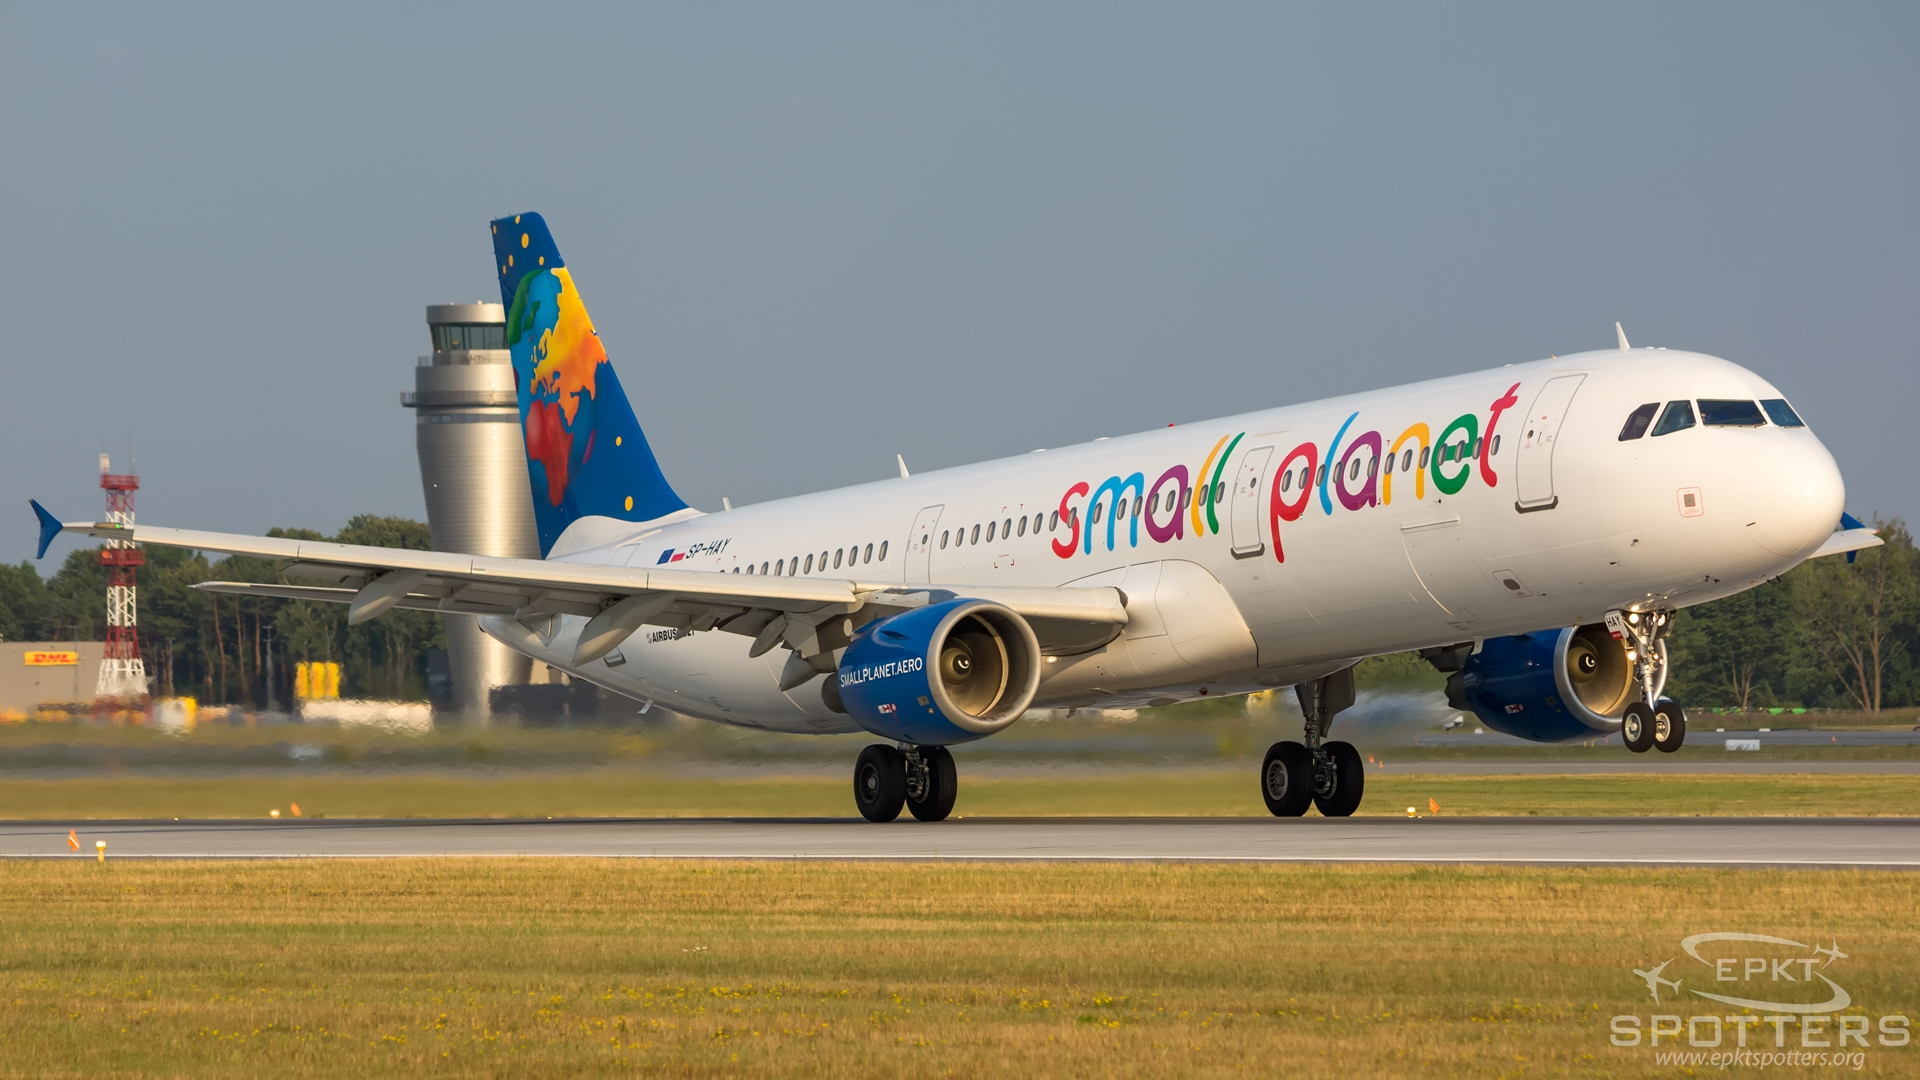 SP-HAY - Airbus 321 -211 (Small Planet Airlines) / Pyrzowice - Katowice Poland [EPKT/KTW]